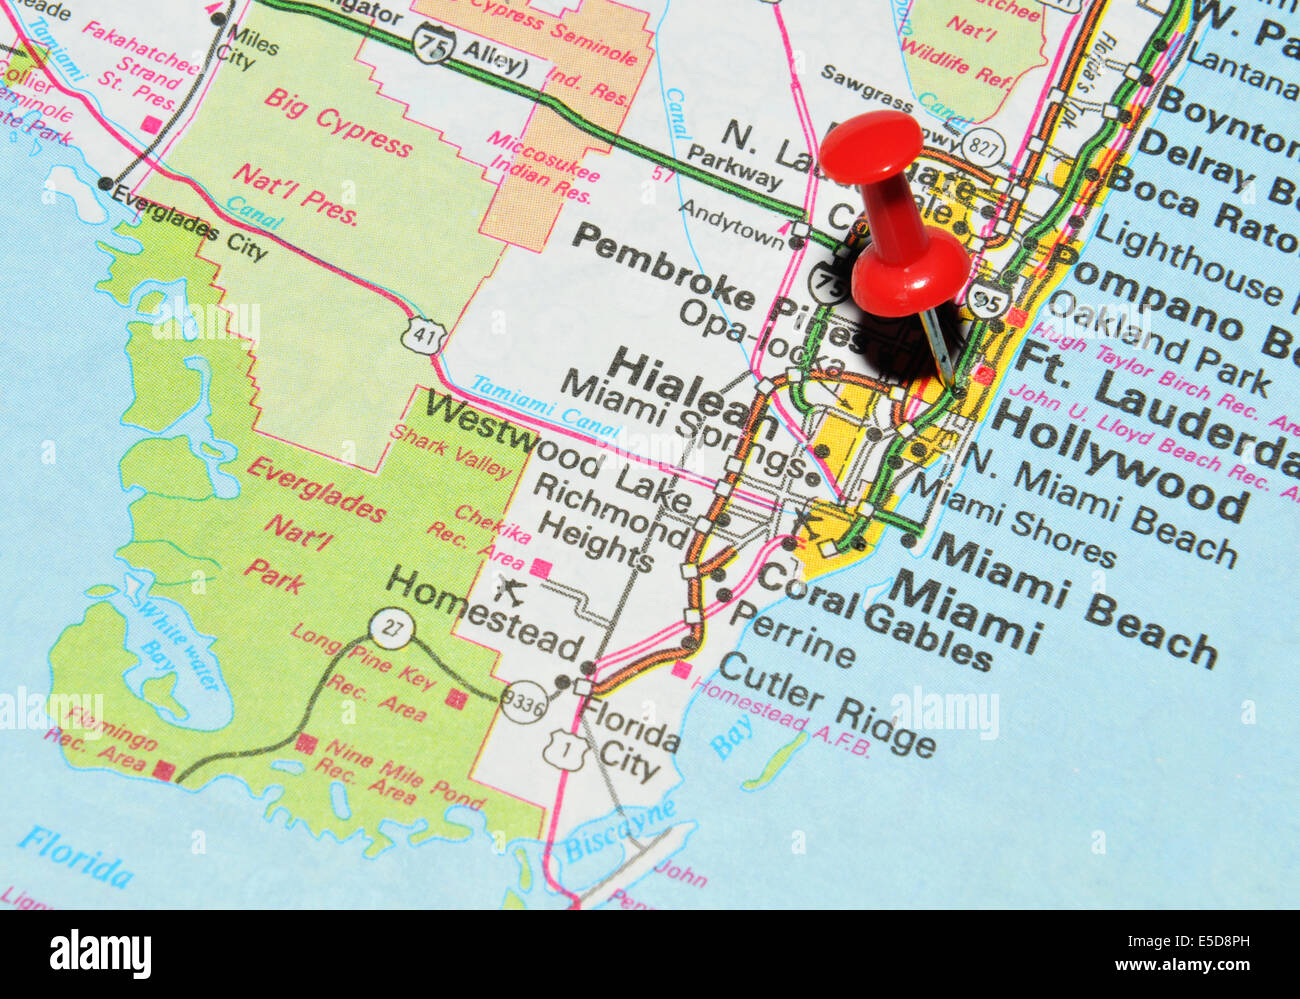 Hollywood On US Map Stock Photo Royalty Free Image Alamy - Miami on us map